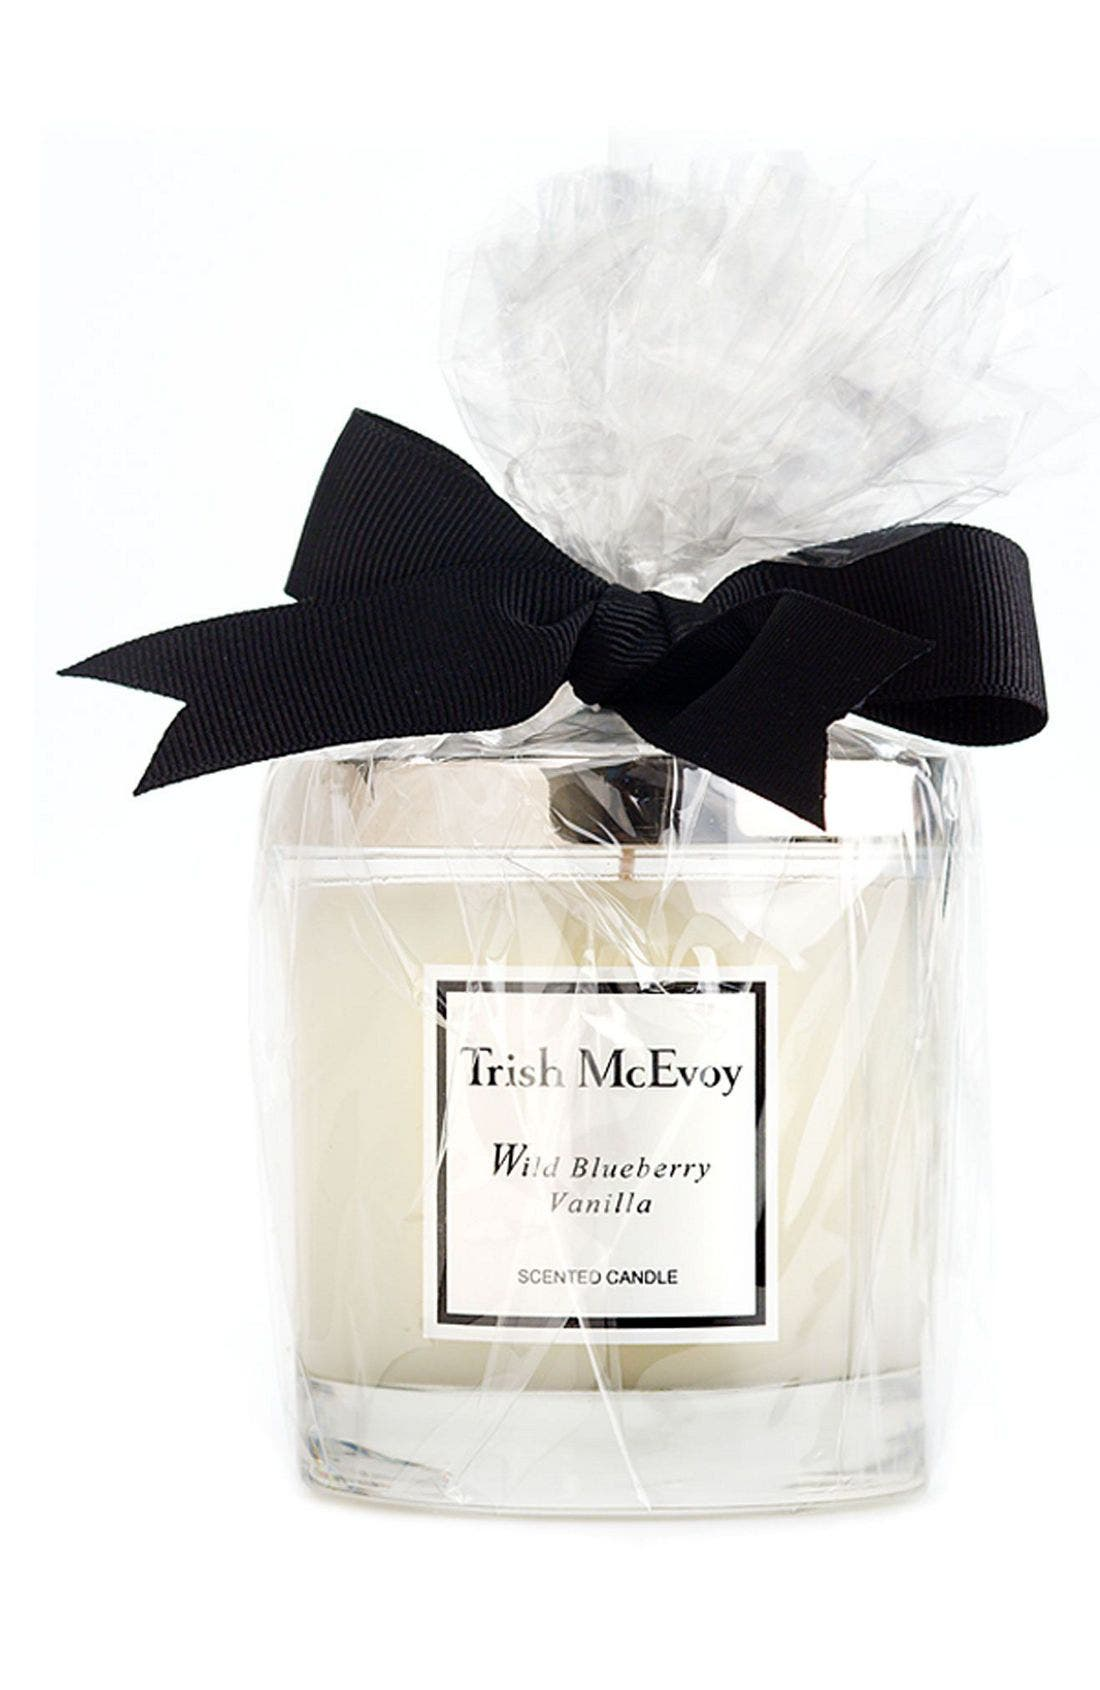 Main Image - Trish McEvoy 'Wild Blueberry Vanilla' Scented Candle